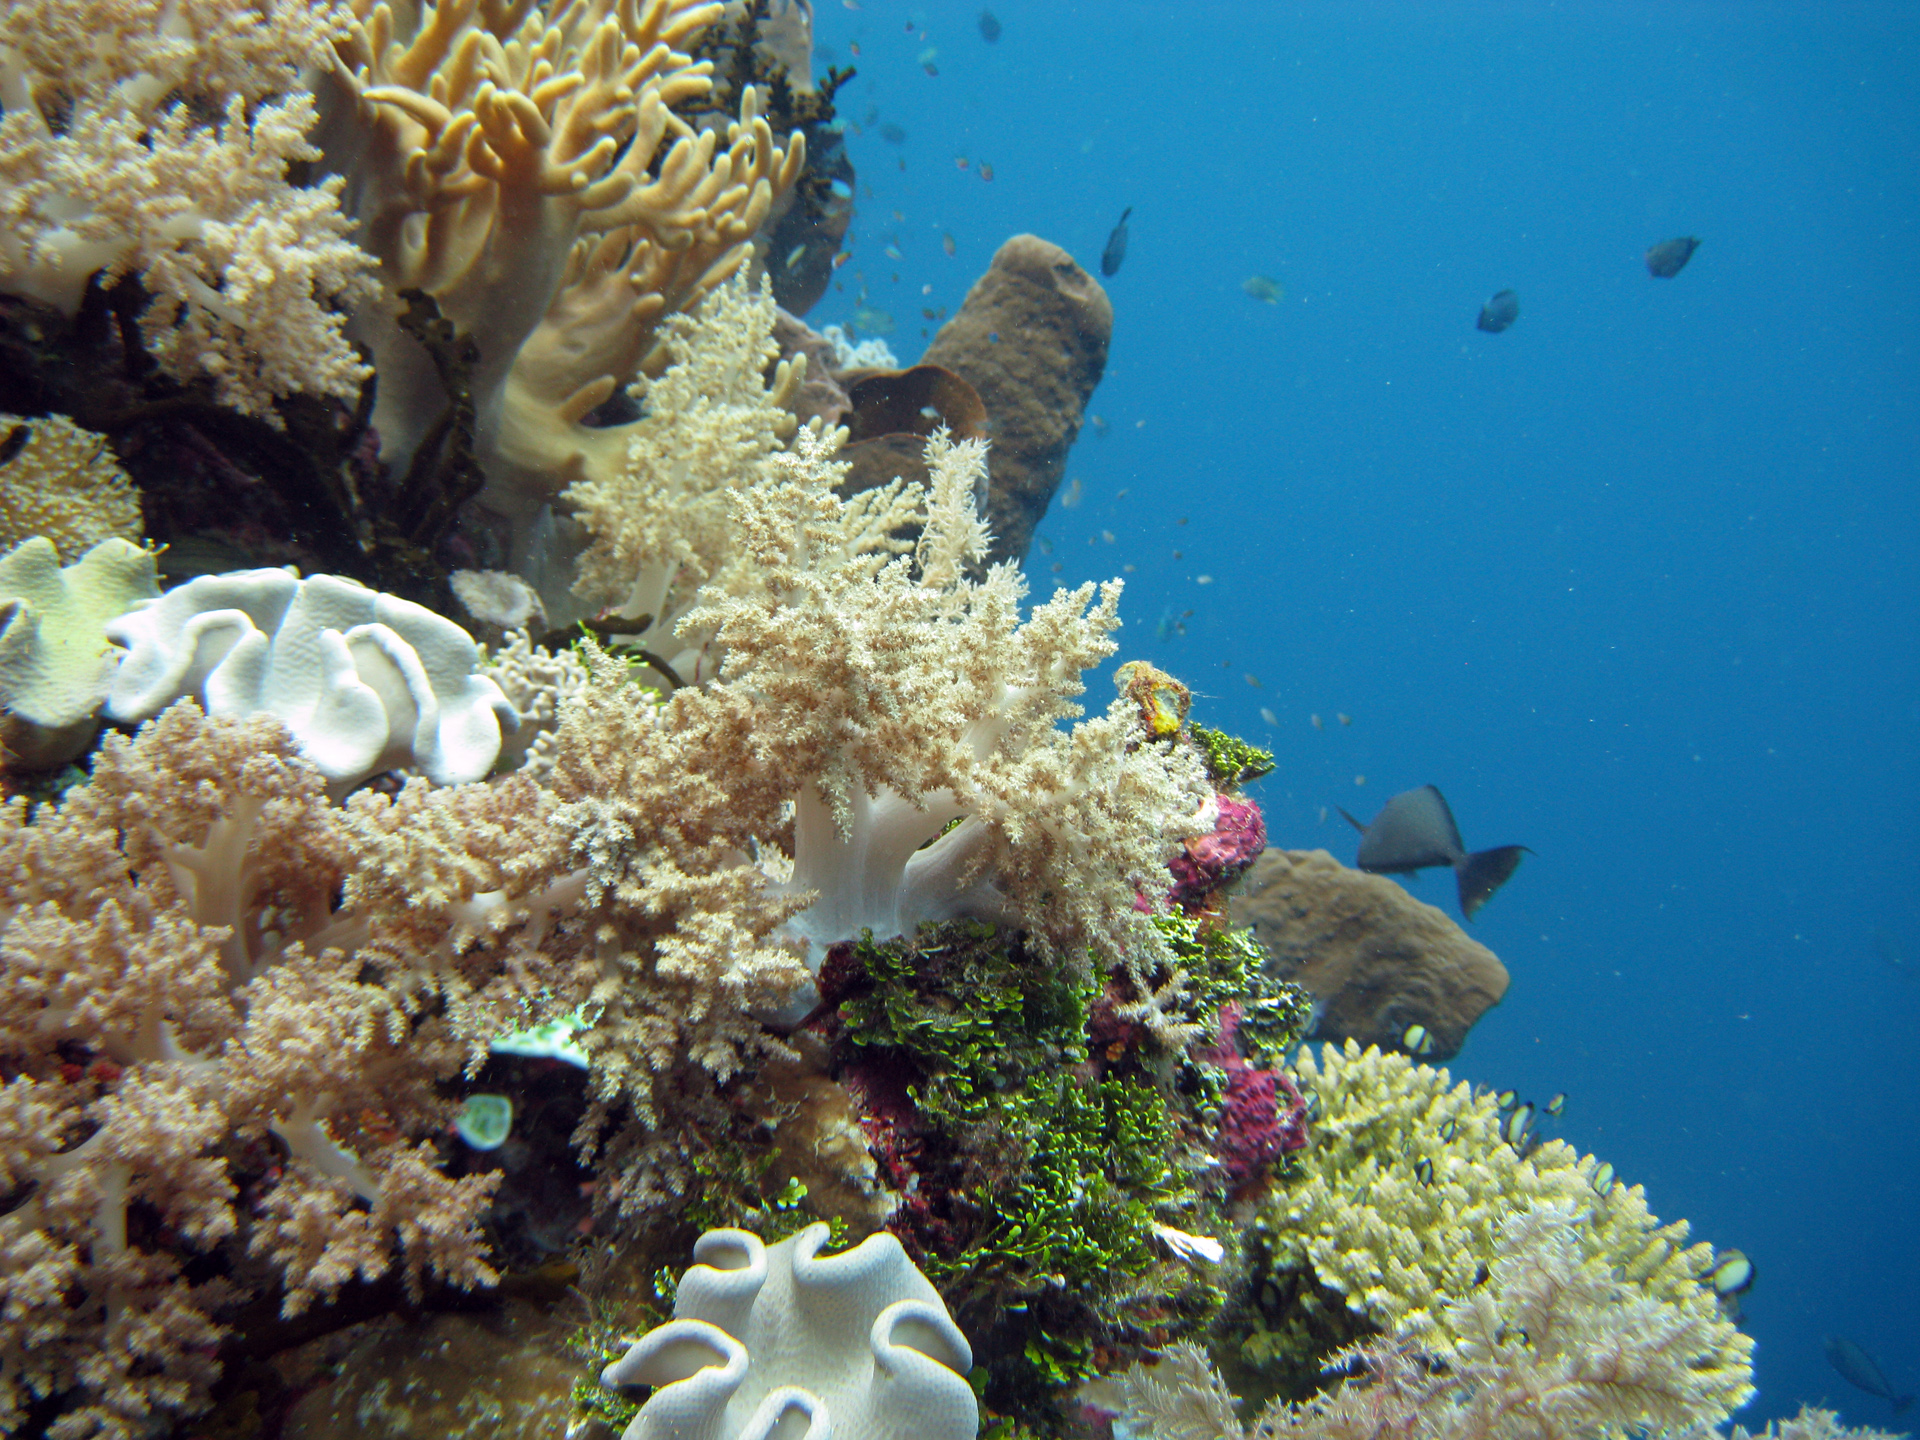 http://upload.wikimedia.org/wikipedia/commons/b/b1/Wakatobi-233.jpg